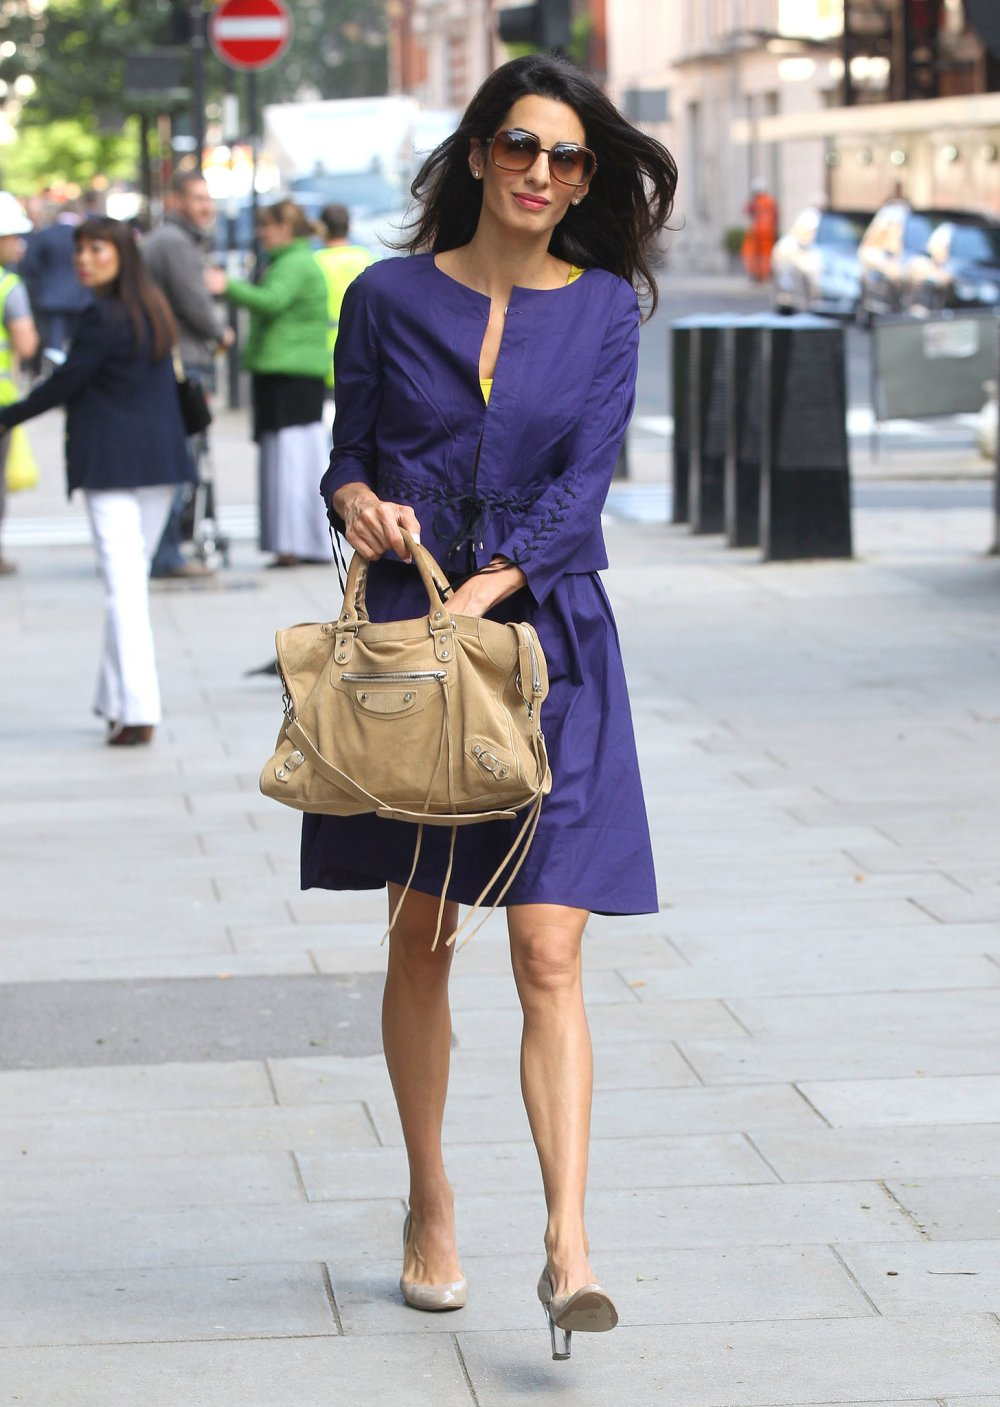 Classic-Slouchy-Balenciaga-Bag-Neutralize-Your-Bold-Suit.jpg.pagespeed.ce.A7kc1h-EPQ